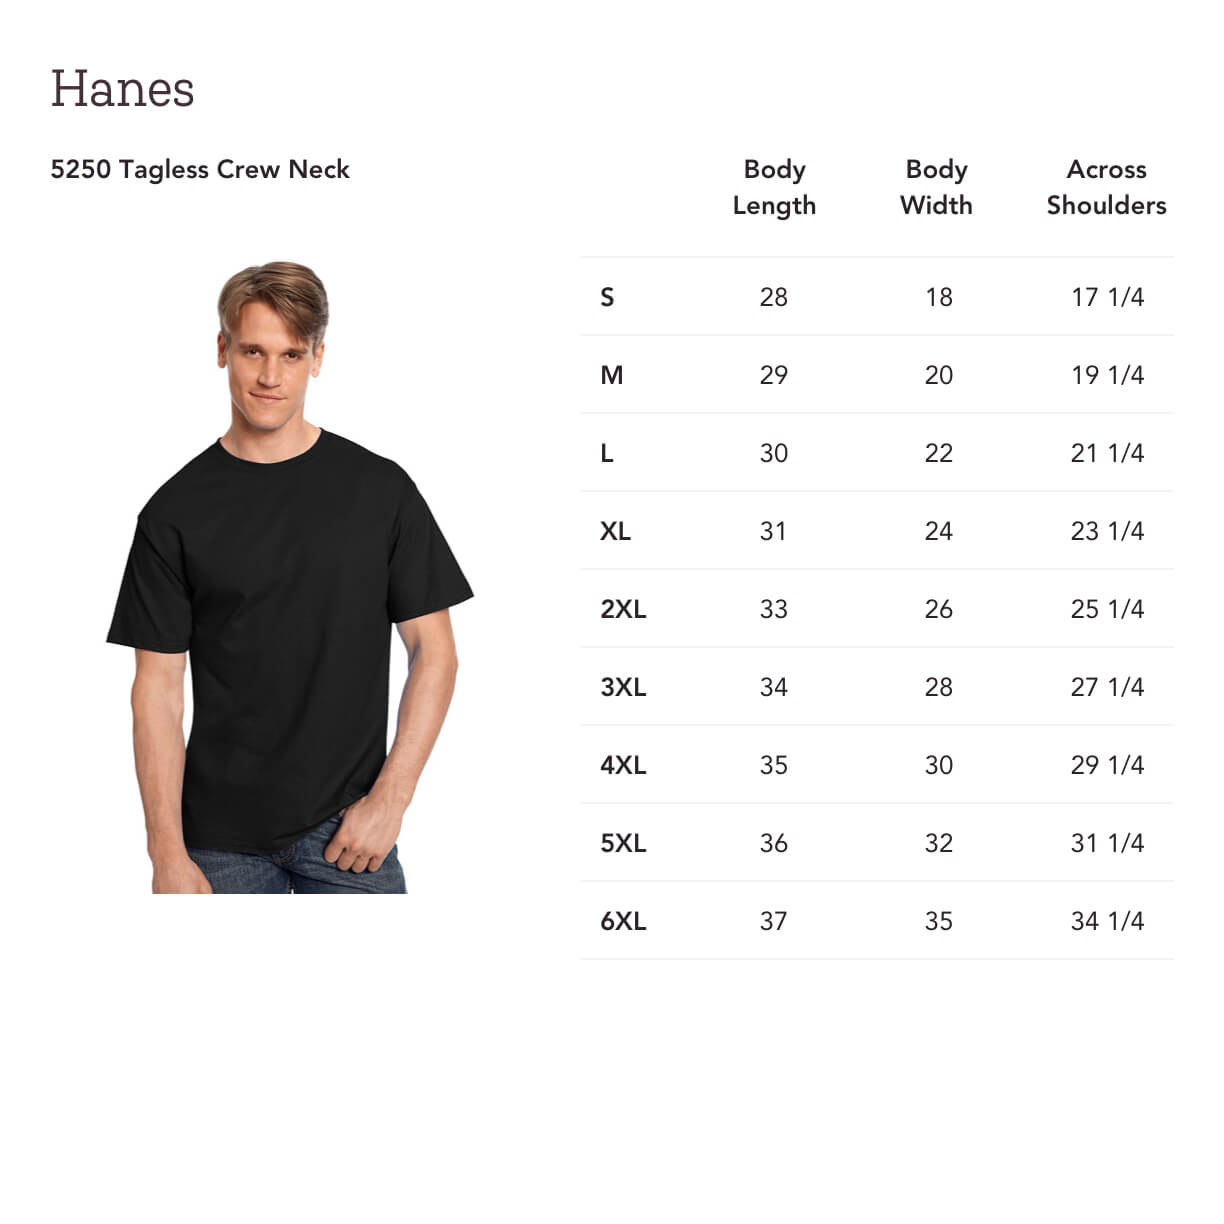 d973353222e5b This Super soft cotton tee looks as great as it feels. Fade resistant and  made from pre-shrunk 100% cotton makes it durable and timeless.